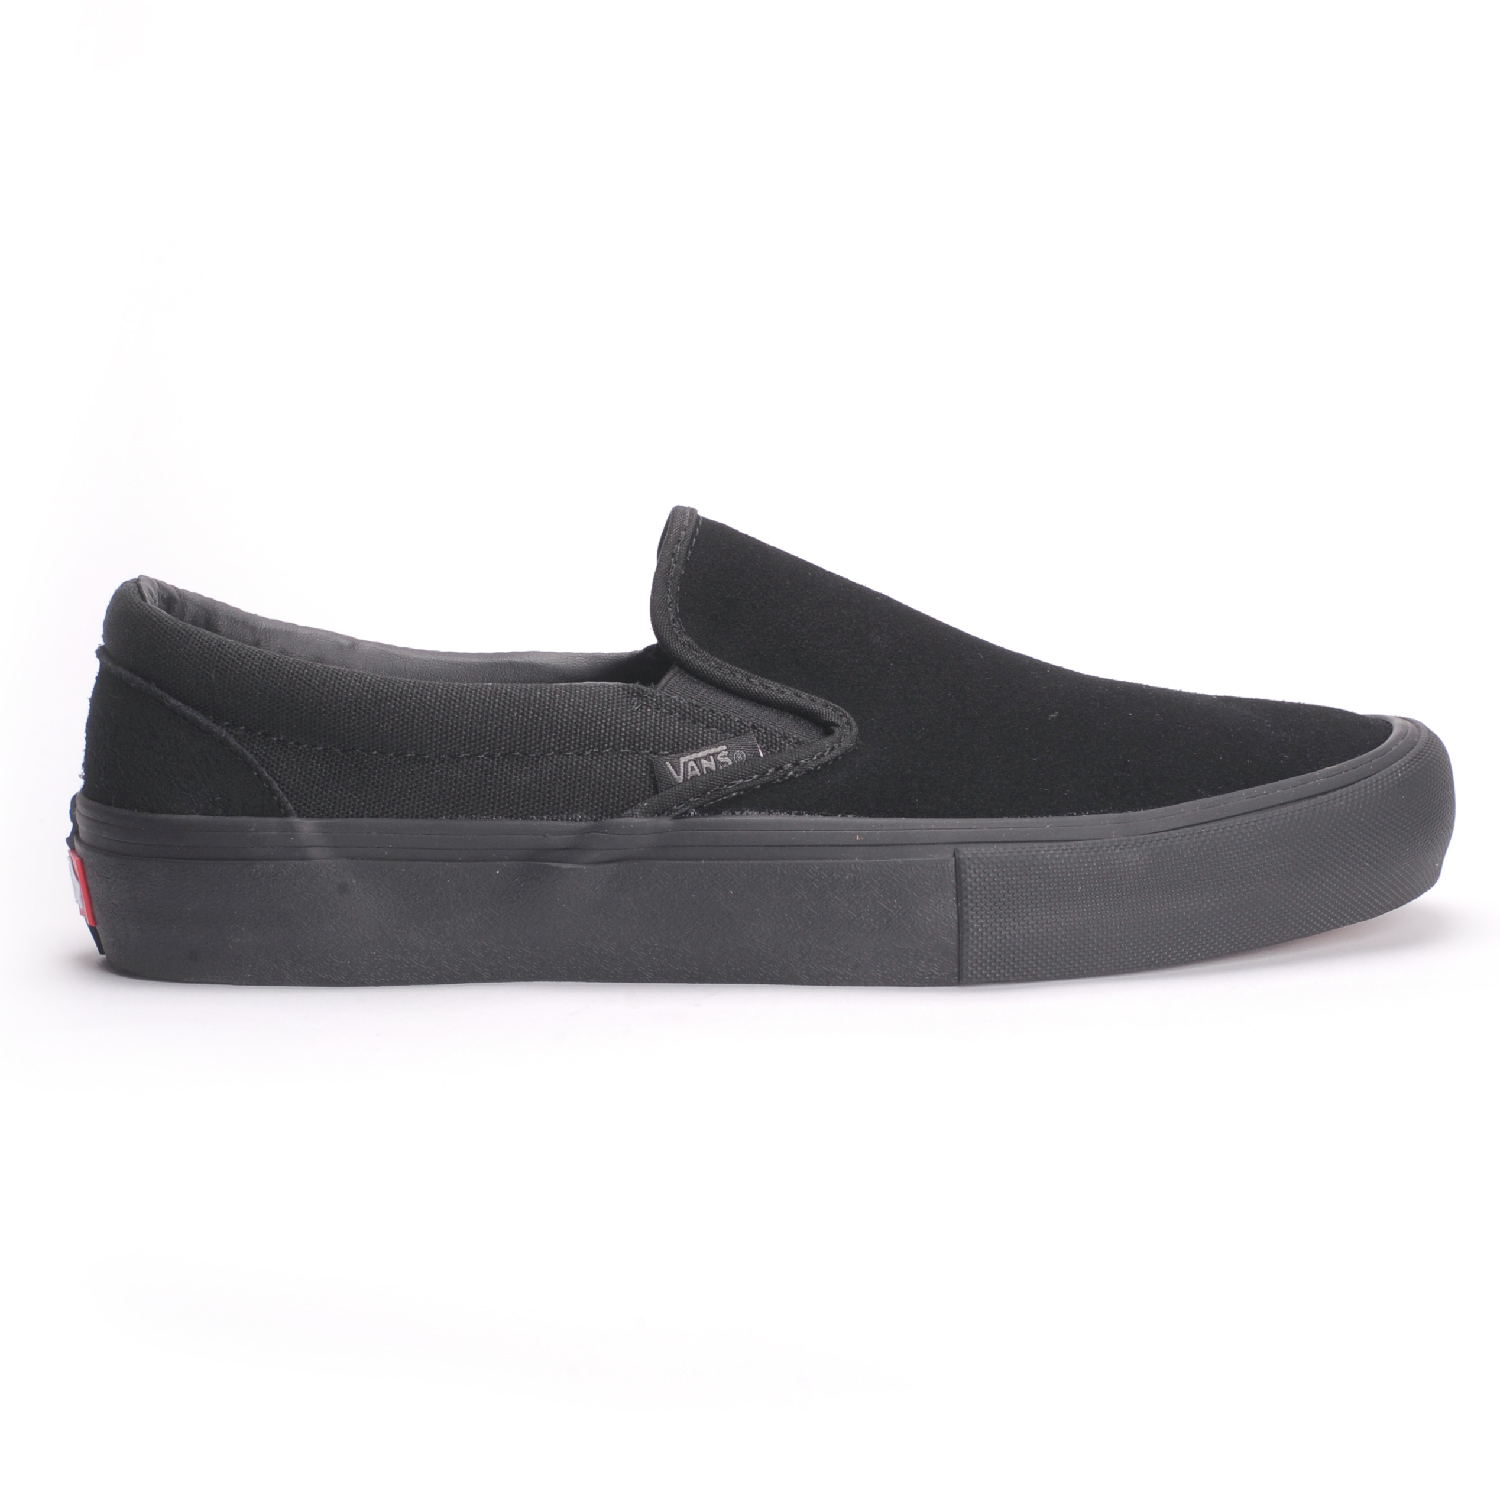 e01d4514edee67 Vans Slip-On Pro (Blackout) Men s Skate Shoes